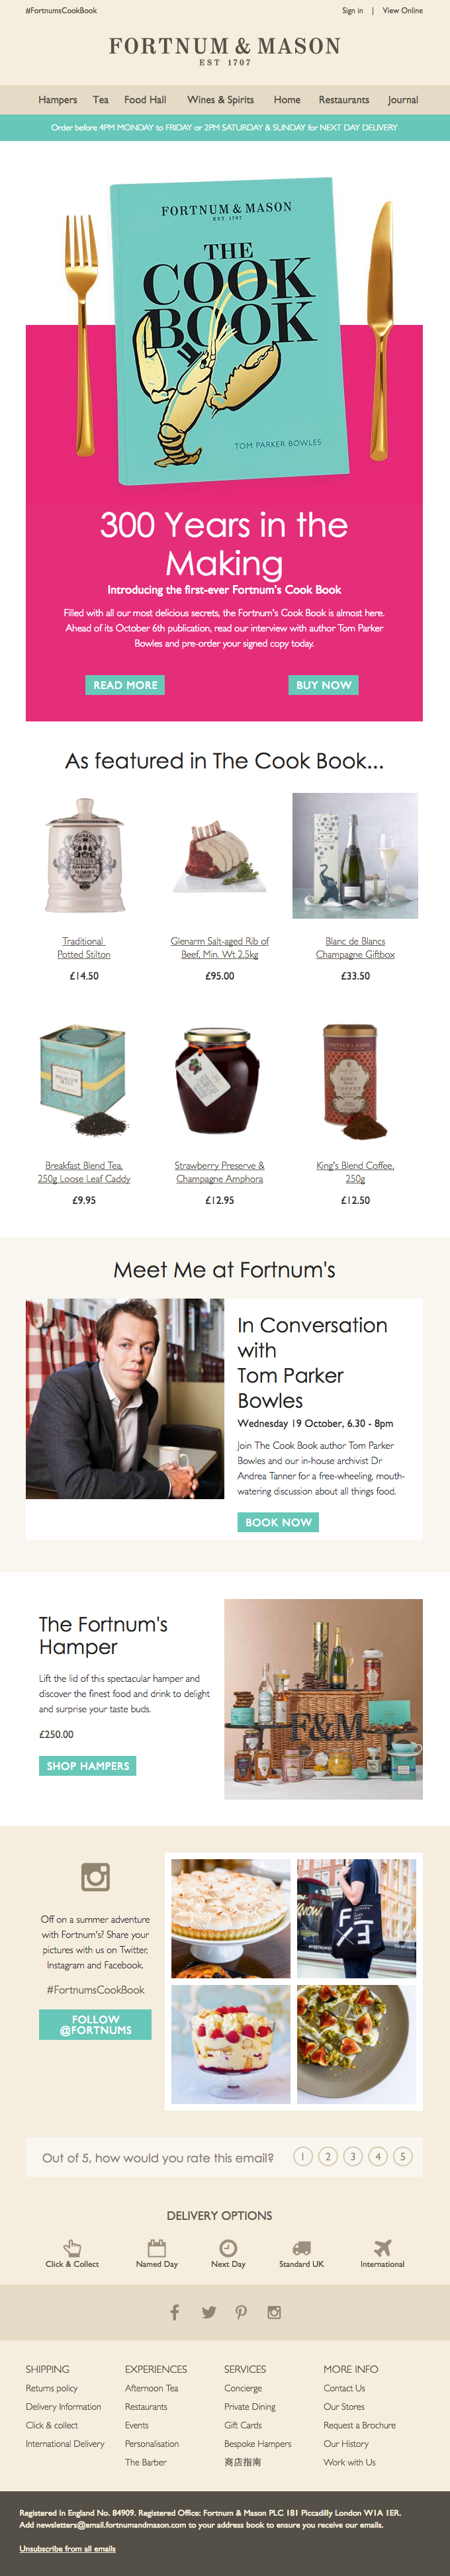 Pre-Order the Fortnum's Cook Book today